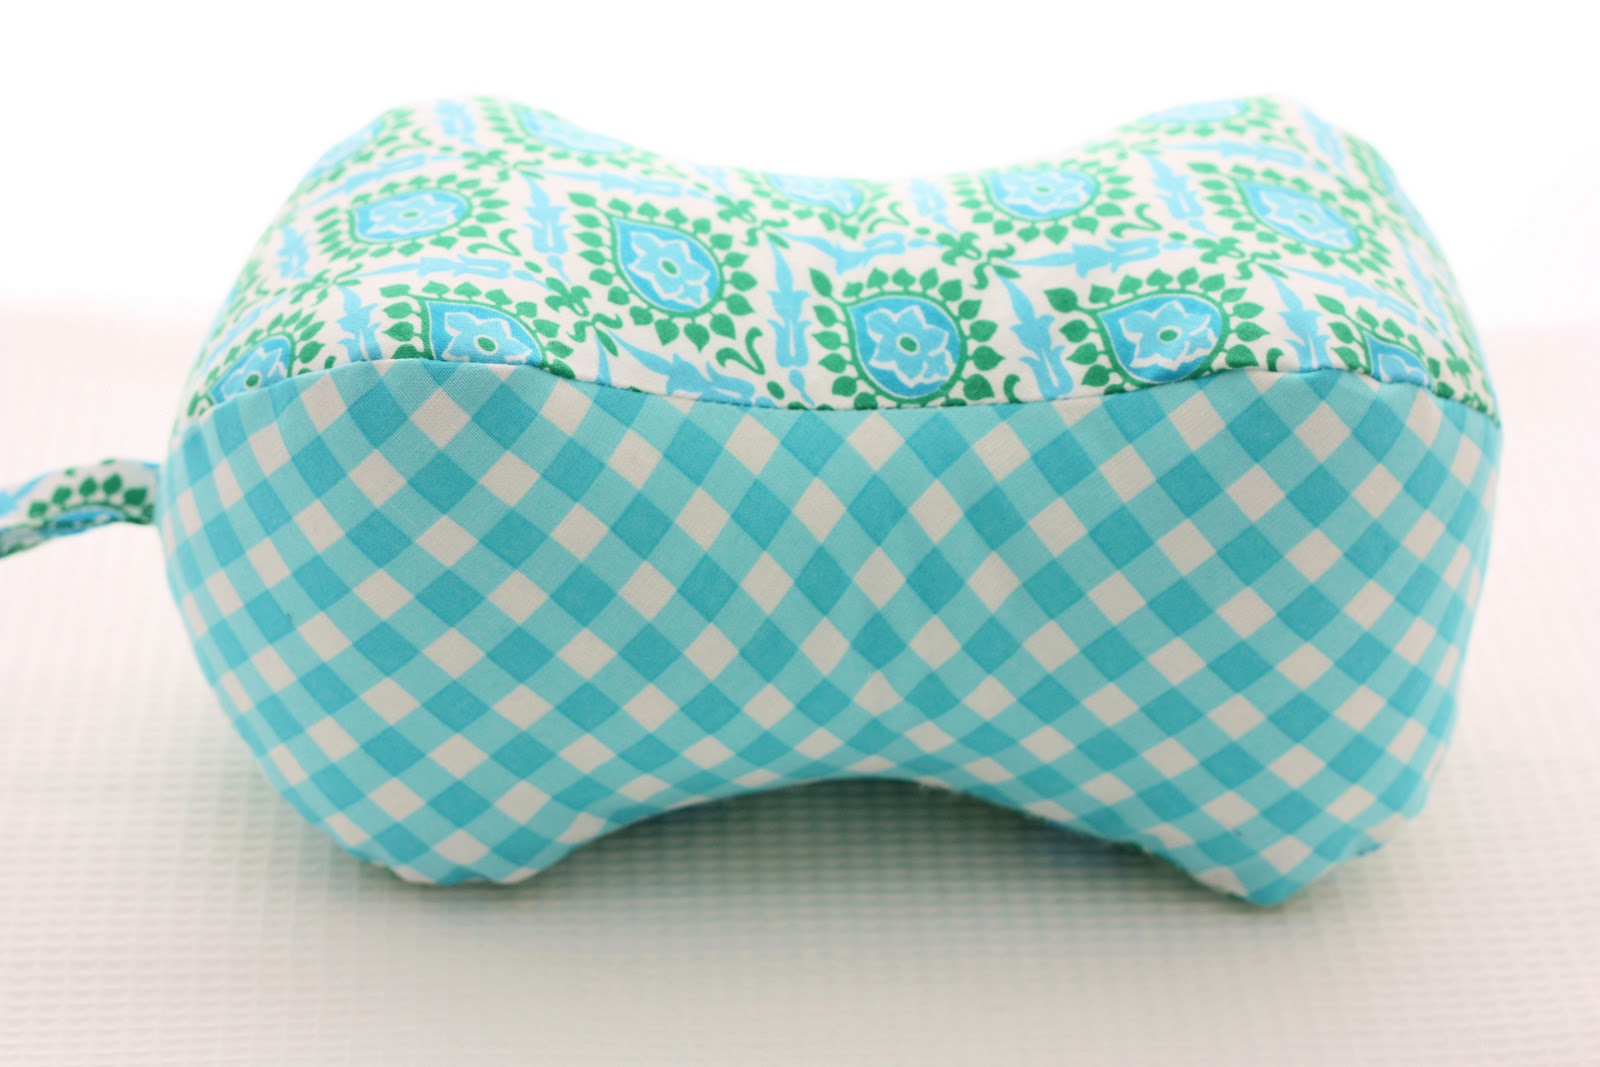 Peanut pillow a spoonful of sugar peanut pillow jeuxipadfo Image collections